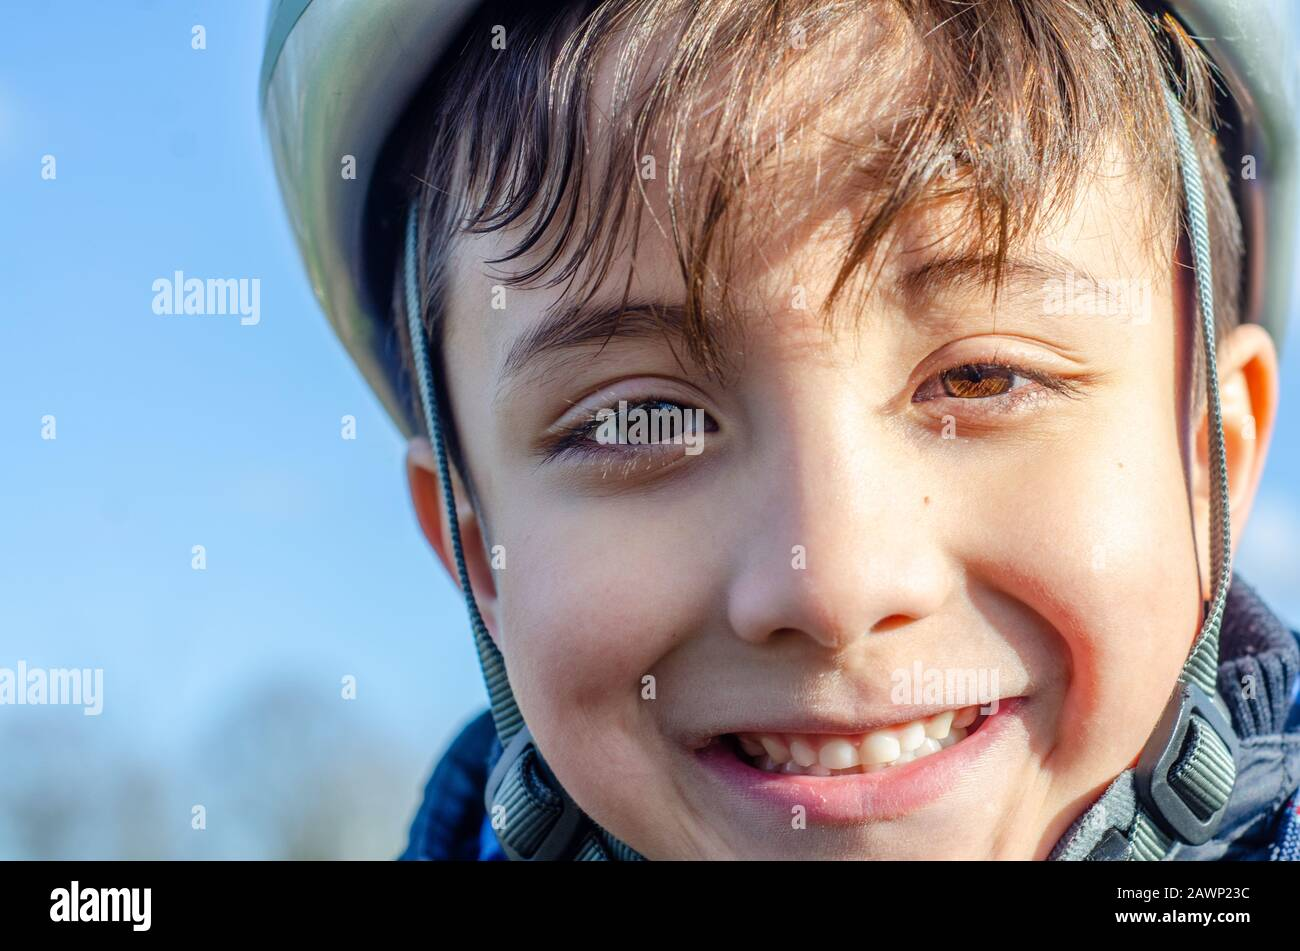 portrait-of-a-young-boy-outdoors-wearing-a-bicycle-helmet-and-smiling-2AWP23C.jpg